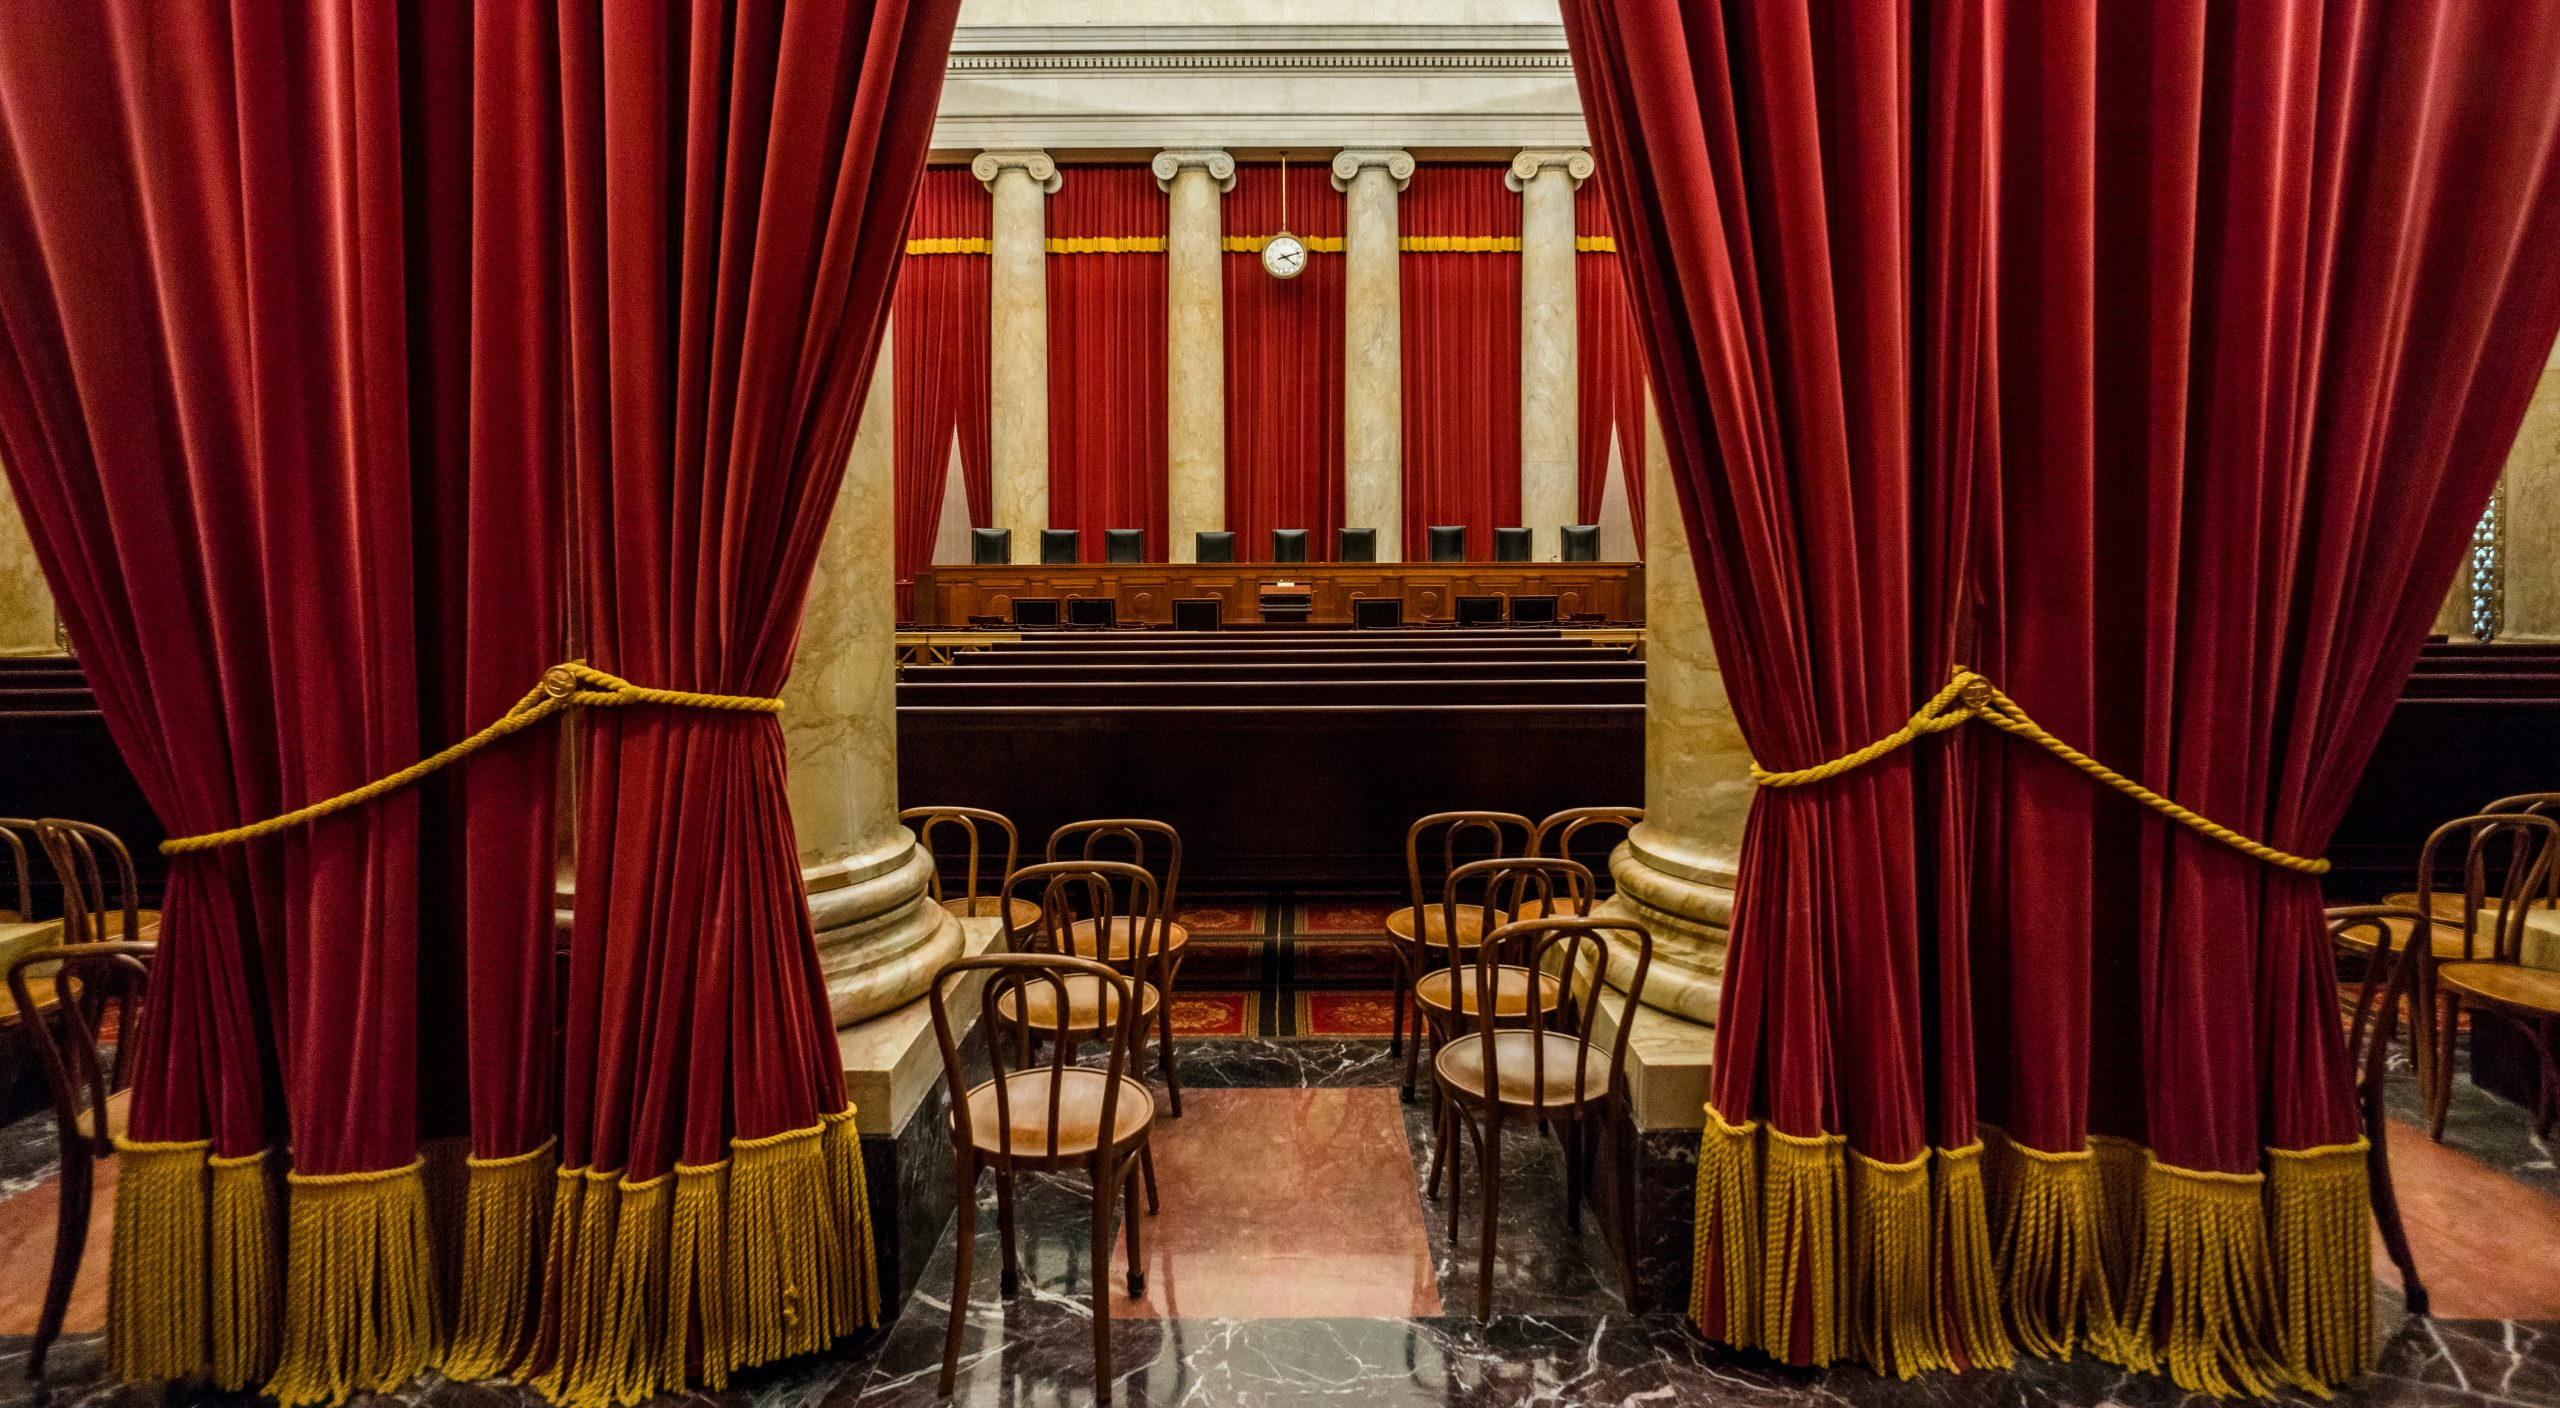 view of empty Supreme Court bench from back of courtroom with large curtains in foreground